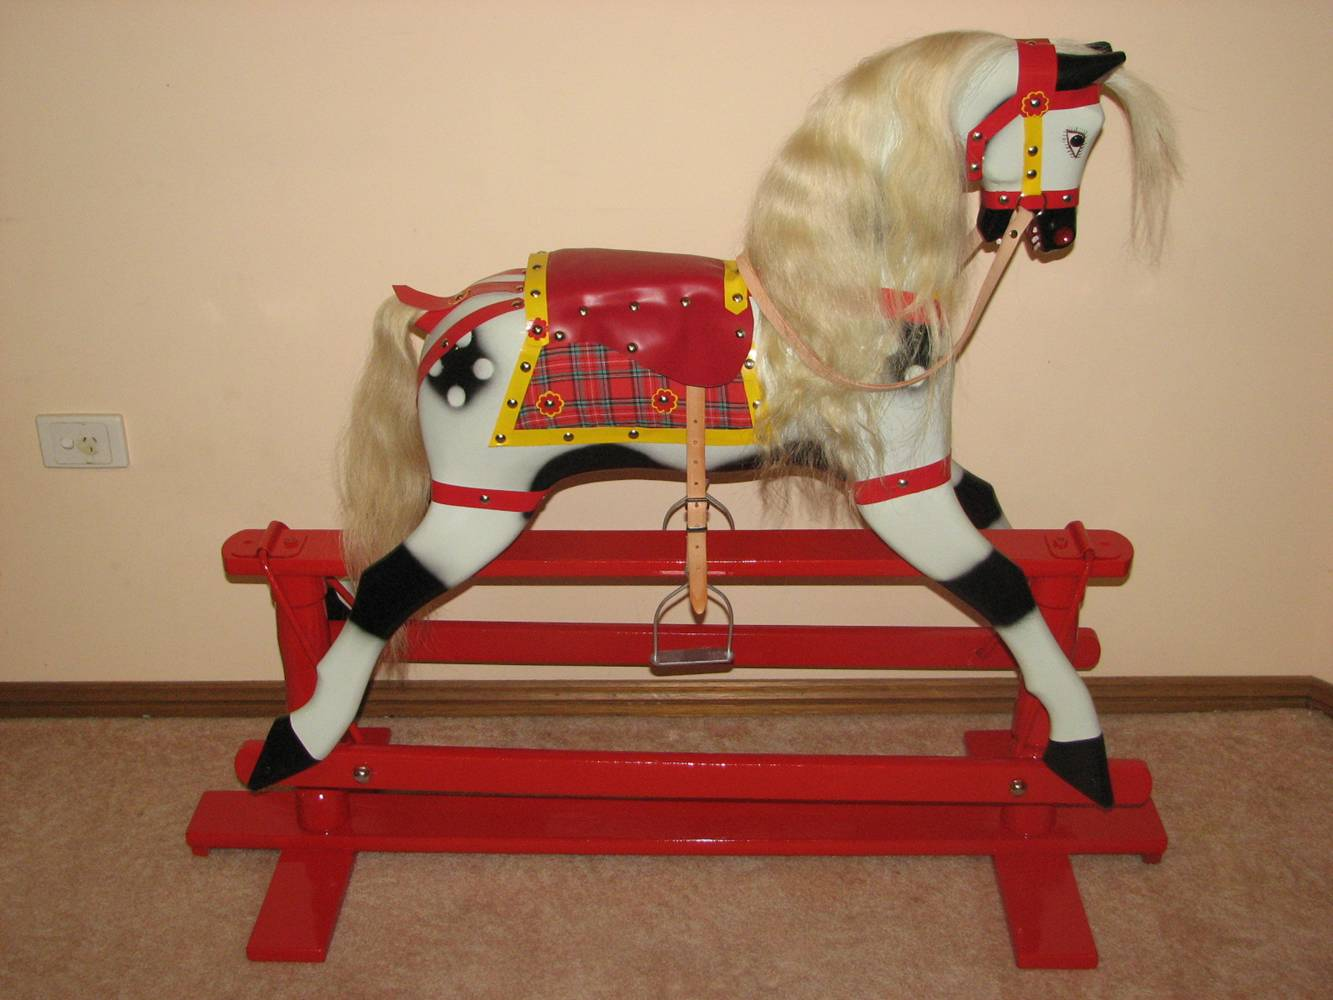 diy rocking chair kit stool for vanity f roebuck horse shed